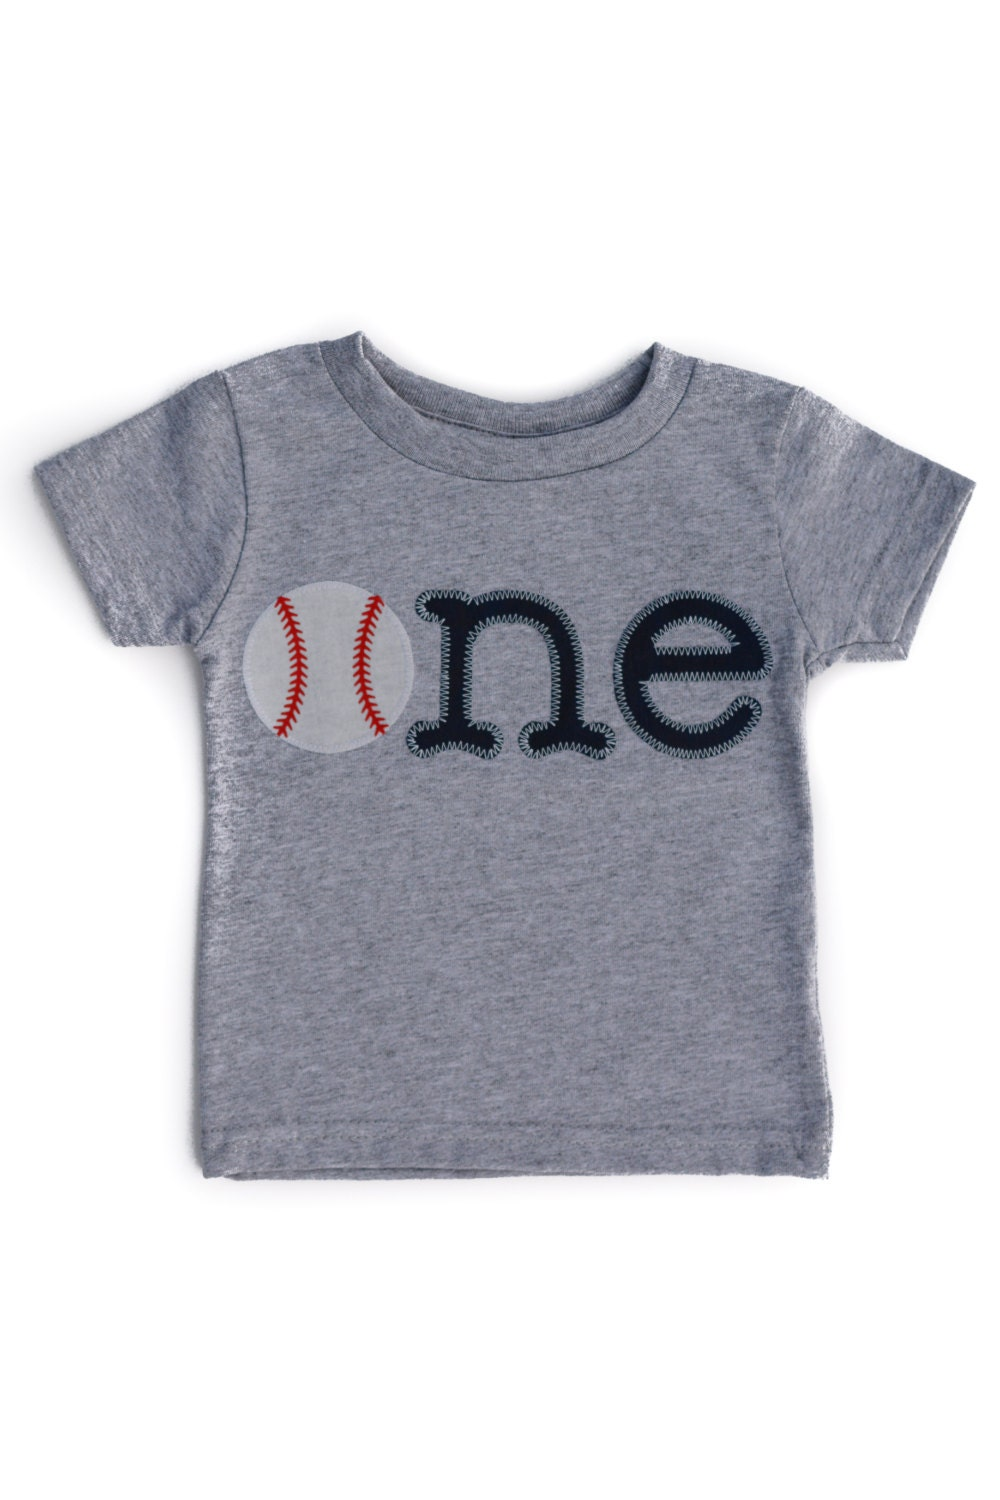 Shop for boys first birthday shirt online at Target. Free shipping on purchases over $35 and save 5% every day with your Target REDcard. Baby Boys' 2 Lion Short sleeve T - Shirt - Just One You® made by carter's Green. Just One You made by carter's. out of .